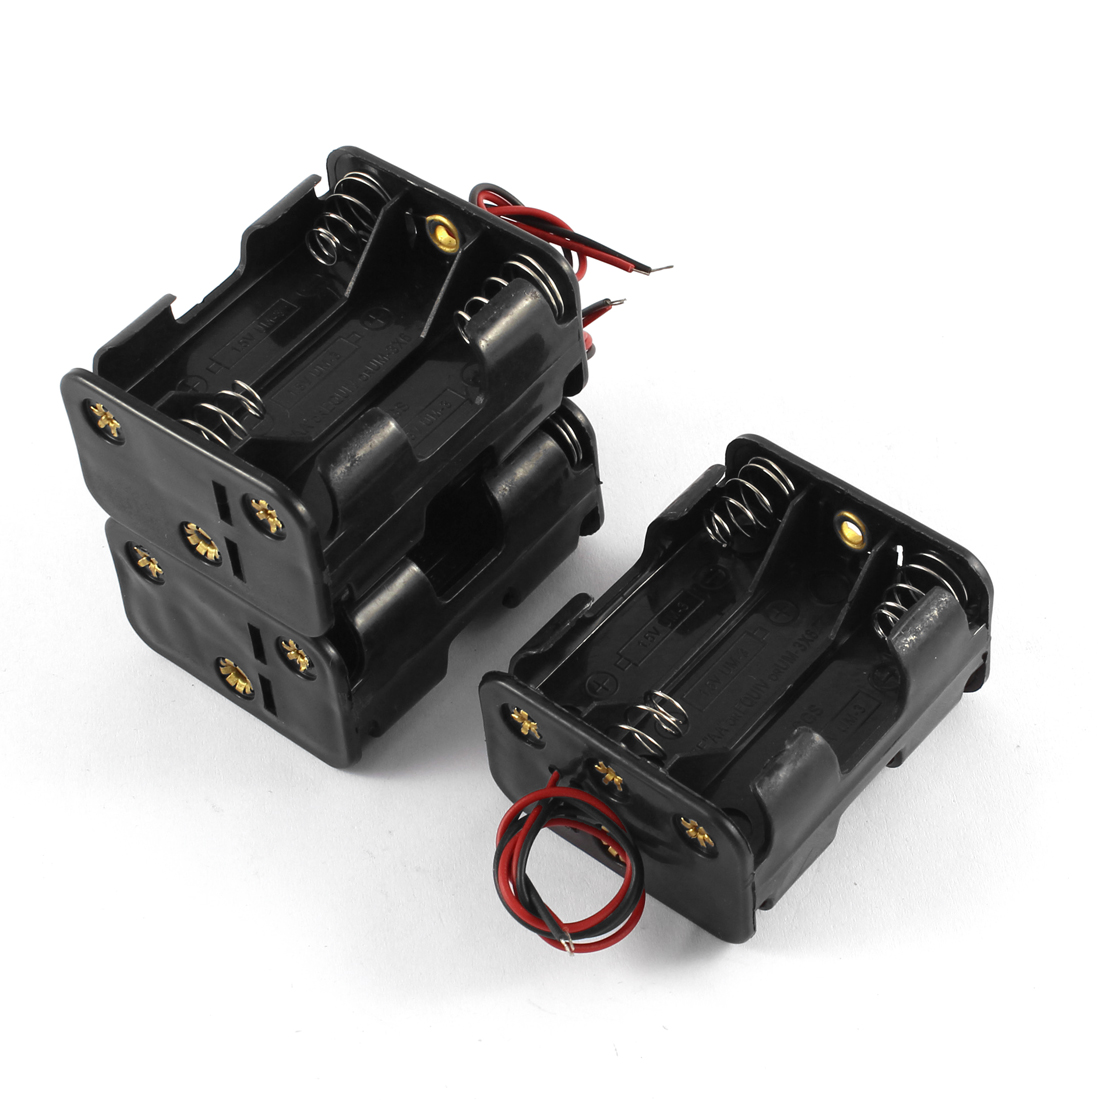 3 Pcs 2 Wire Leads 6 x 1.5V AA Battery Dual Sides Batteries Holder Case Black